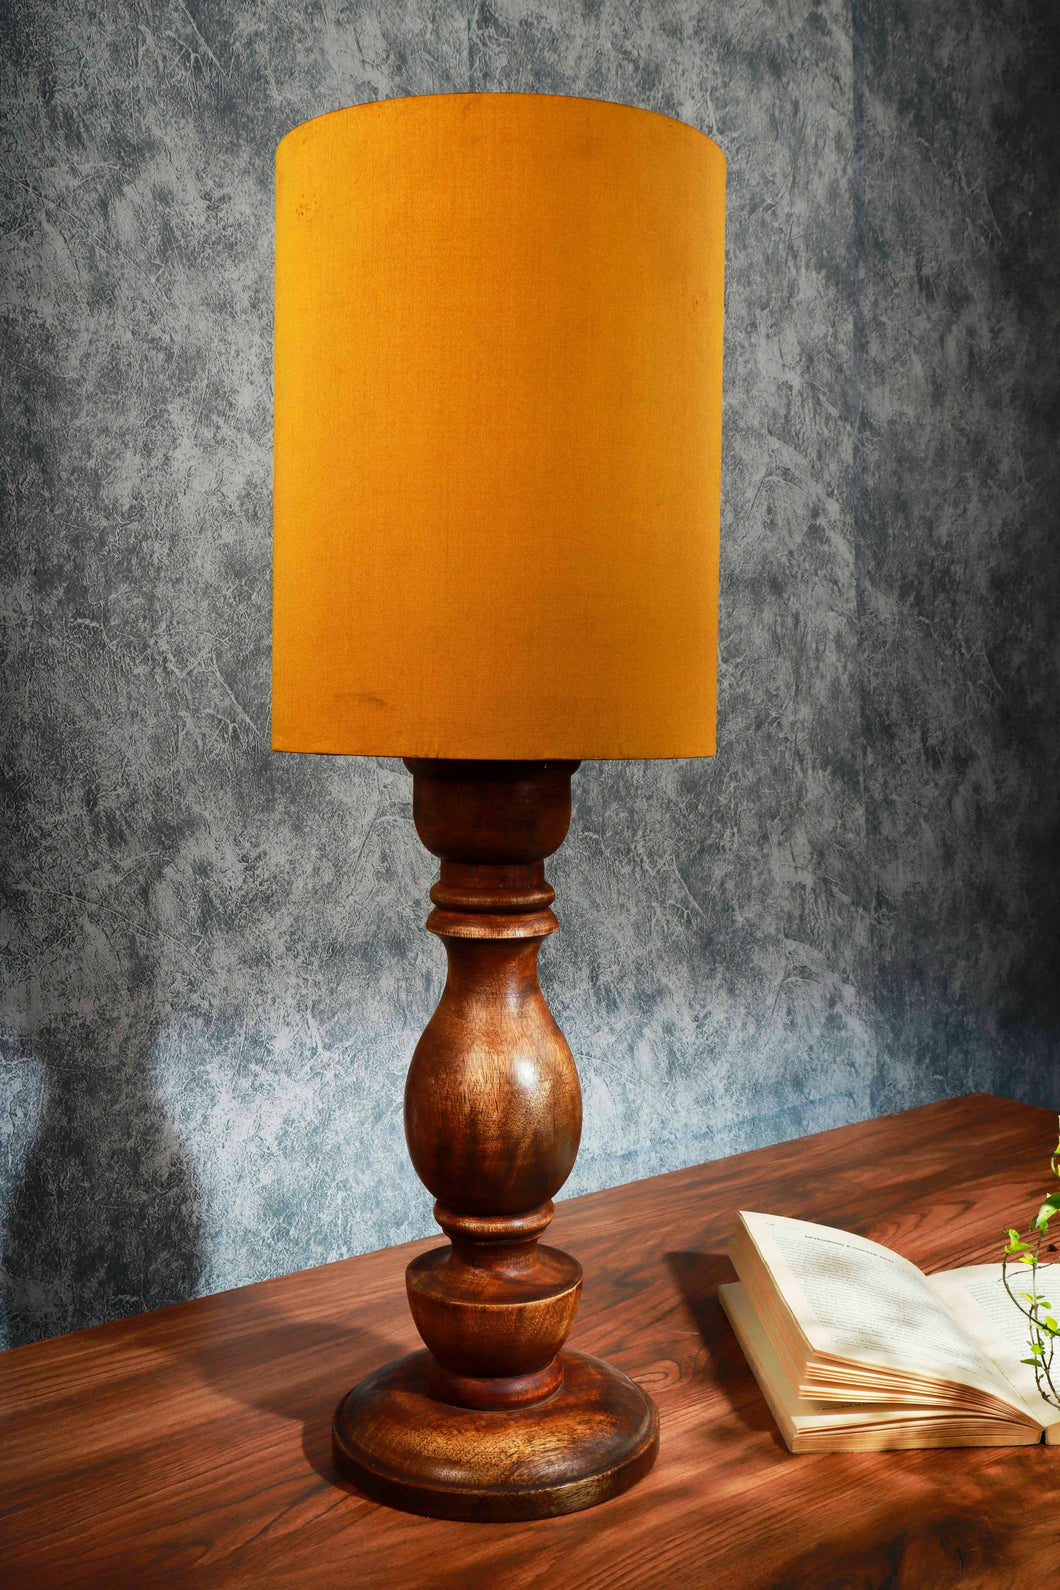 Shady Brown Table Lamp with Long Yellow Velvet Lampshade